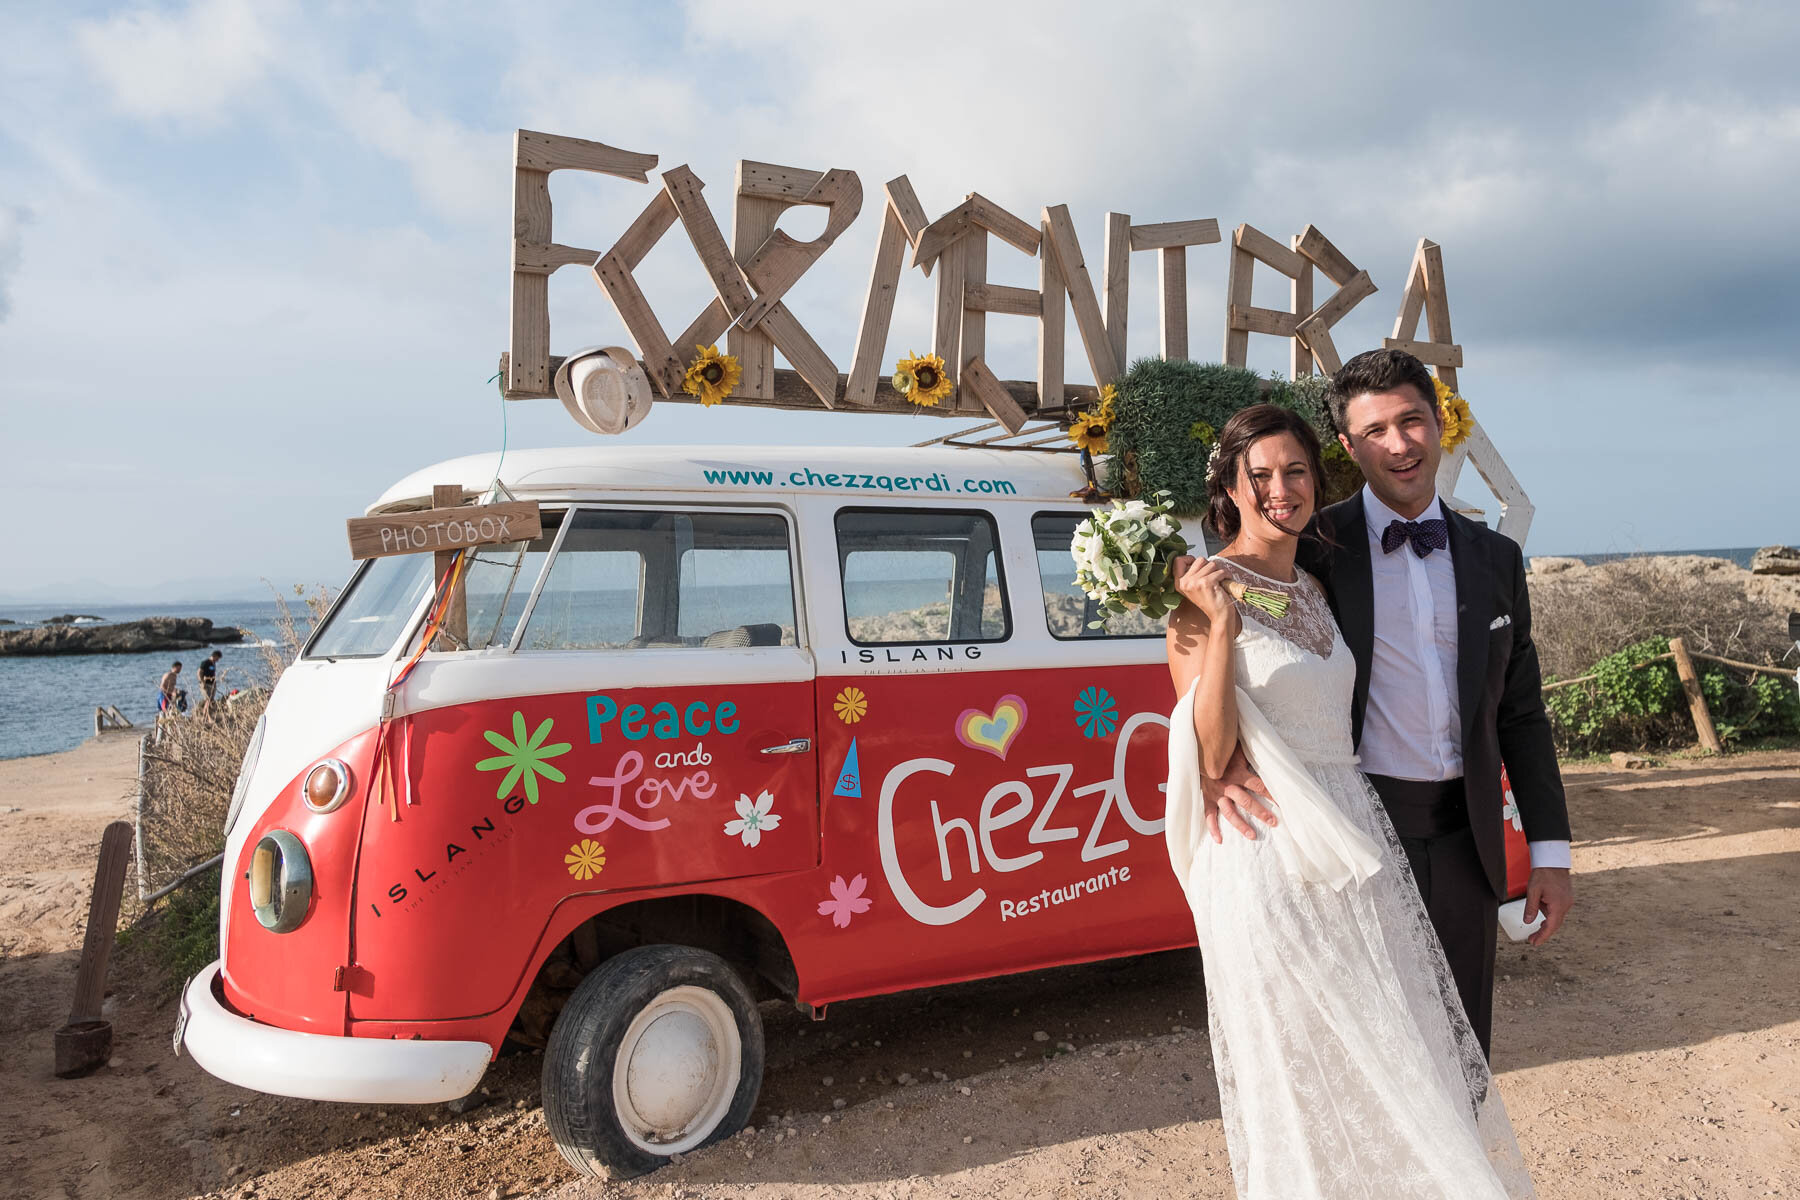 wedding formentera chezz gerdi 12.jpg